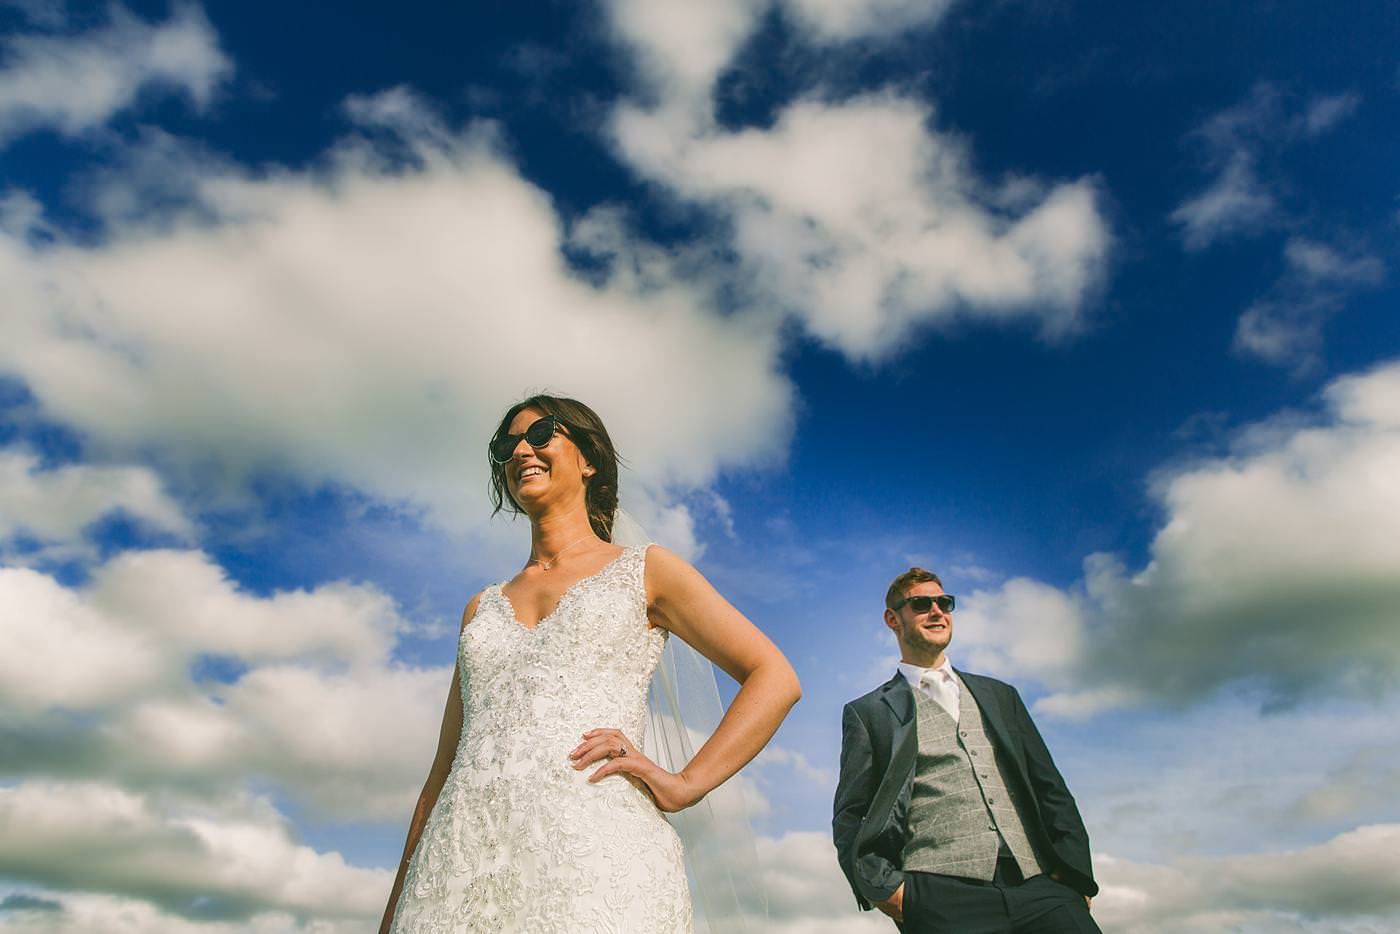 wedding photographer in shropshire 2726